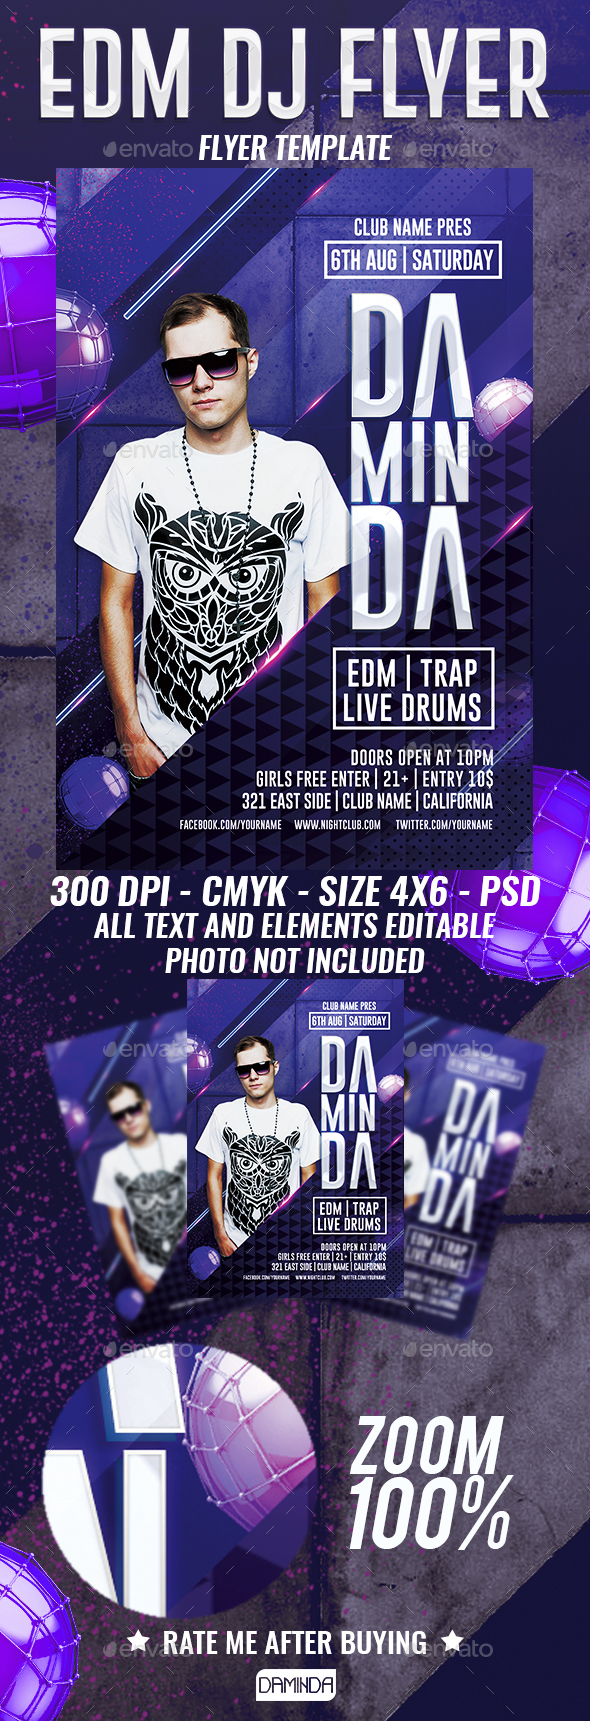 Dj Club Graphics, Designs & Templates from GraphicRiver (Page 4)